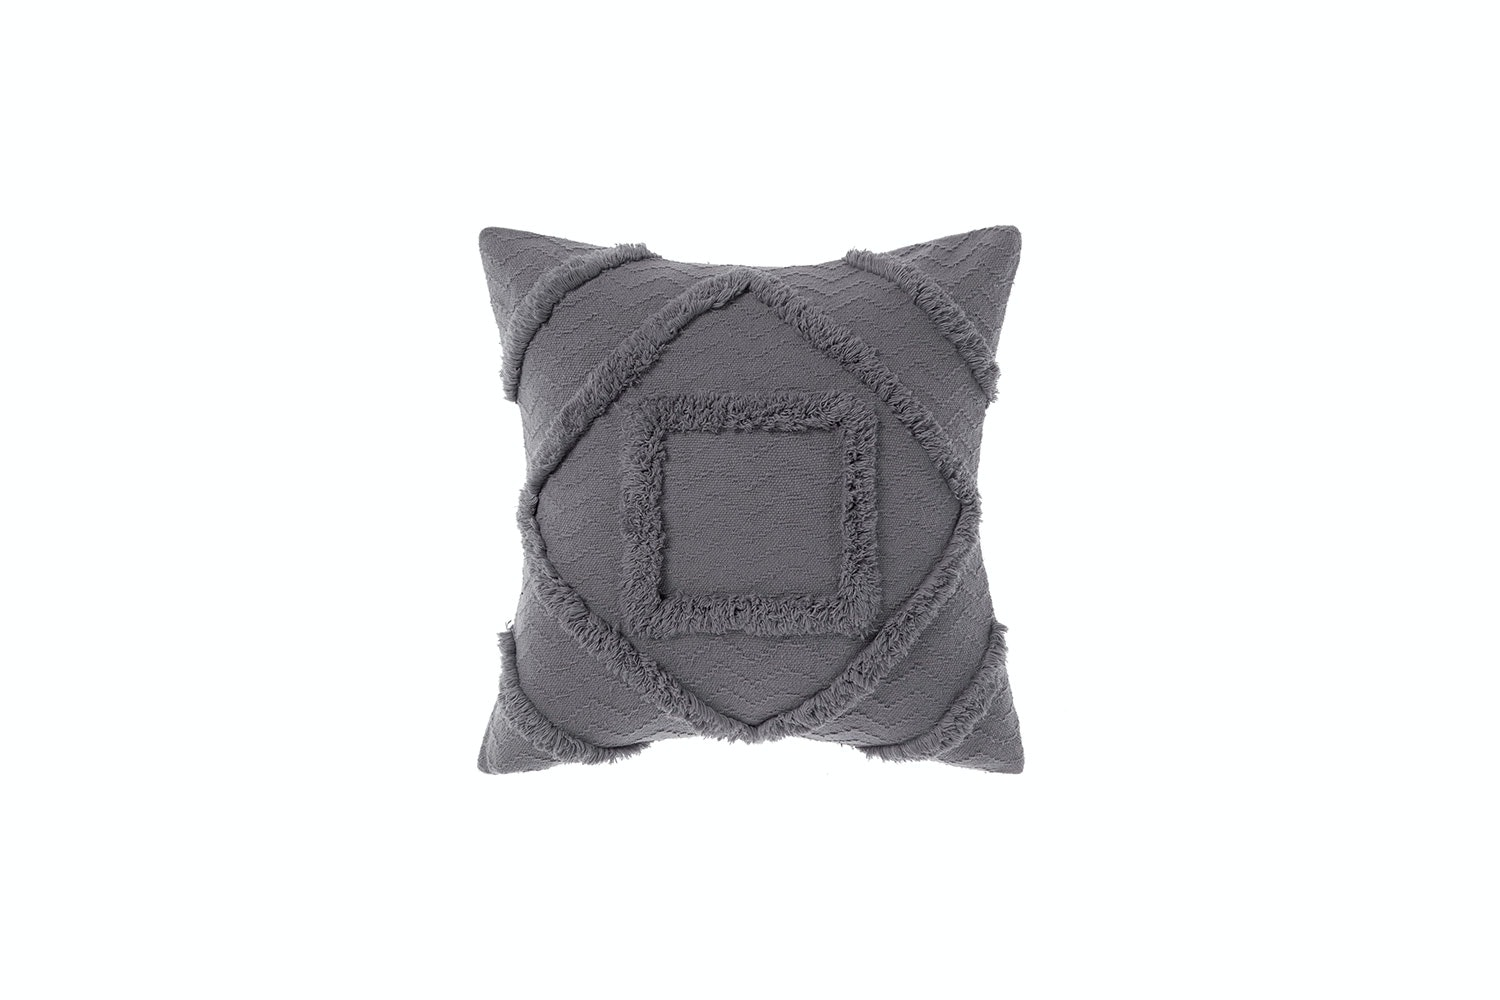 Adalyn Charcoal Square Cushion by Savona